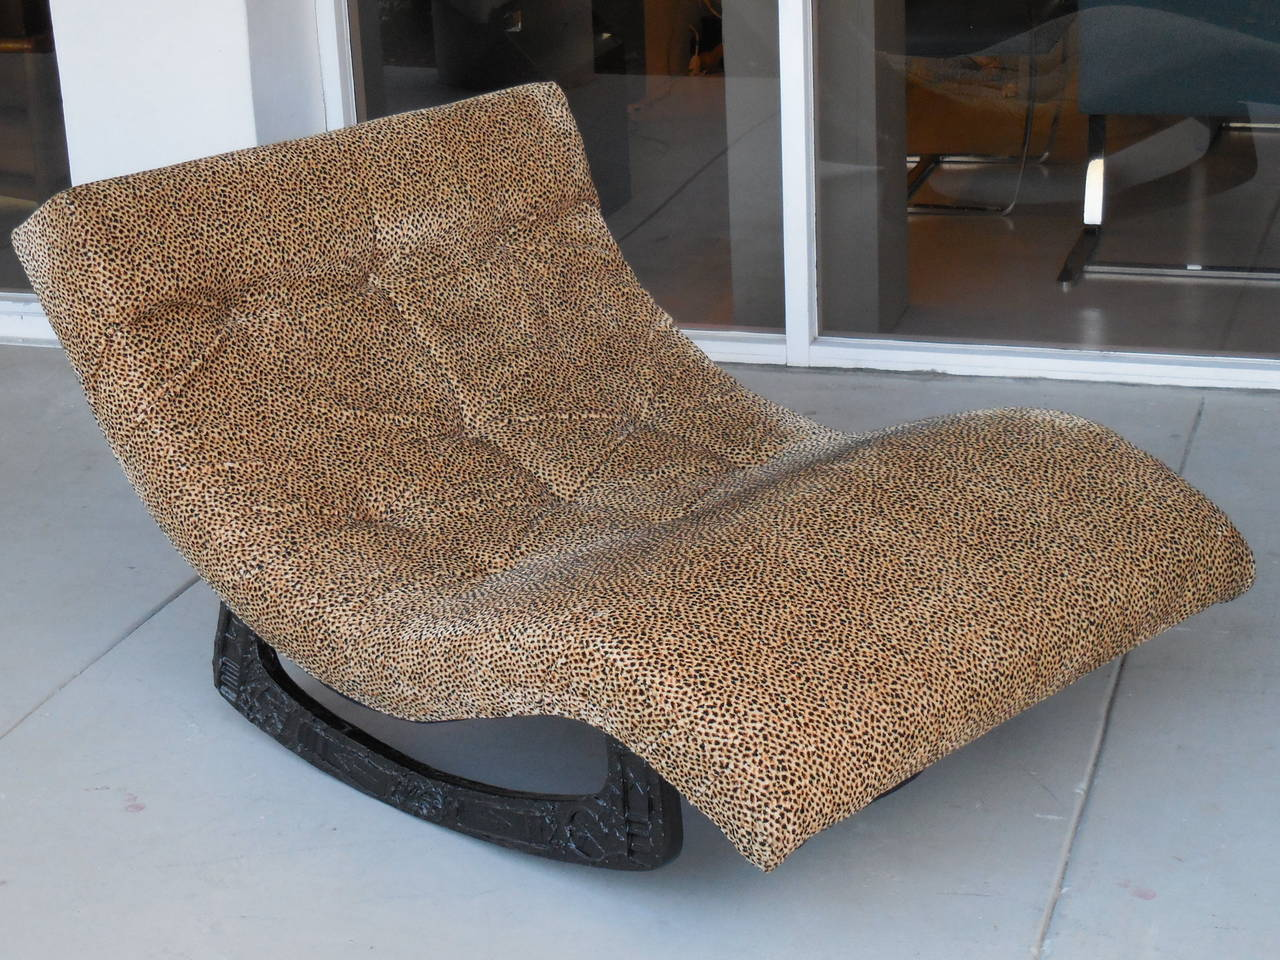 Brutalist adrian pearsall rocking chaise at 1stdibs for Adrian pearsall rocking chaise